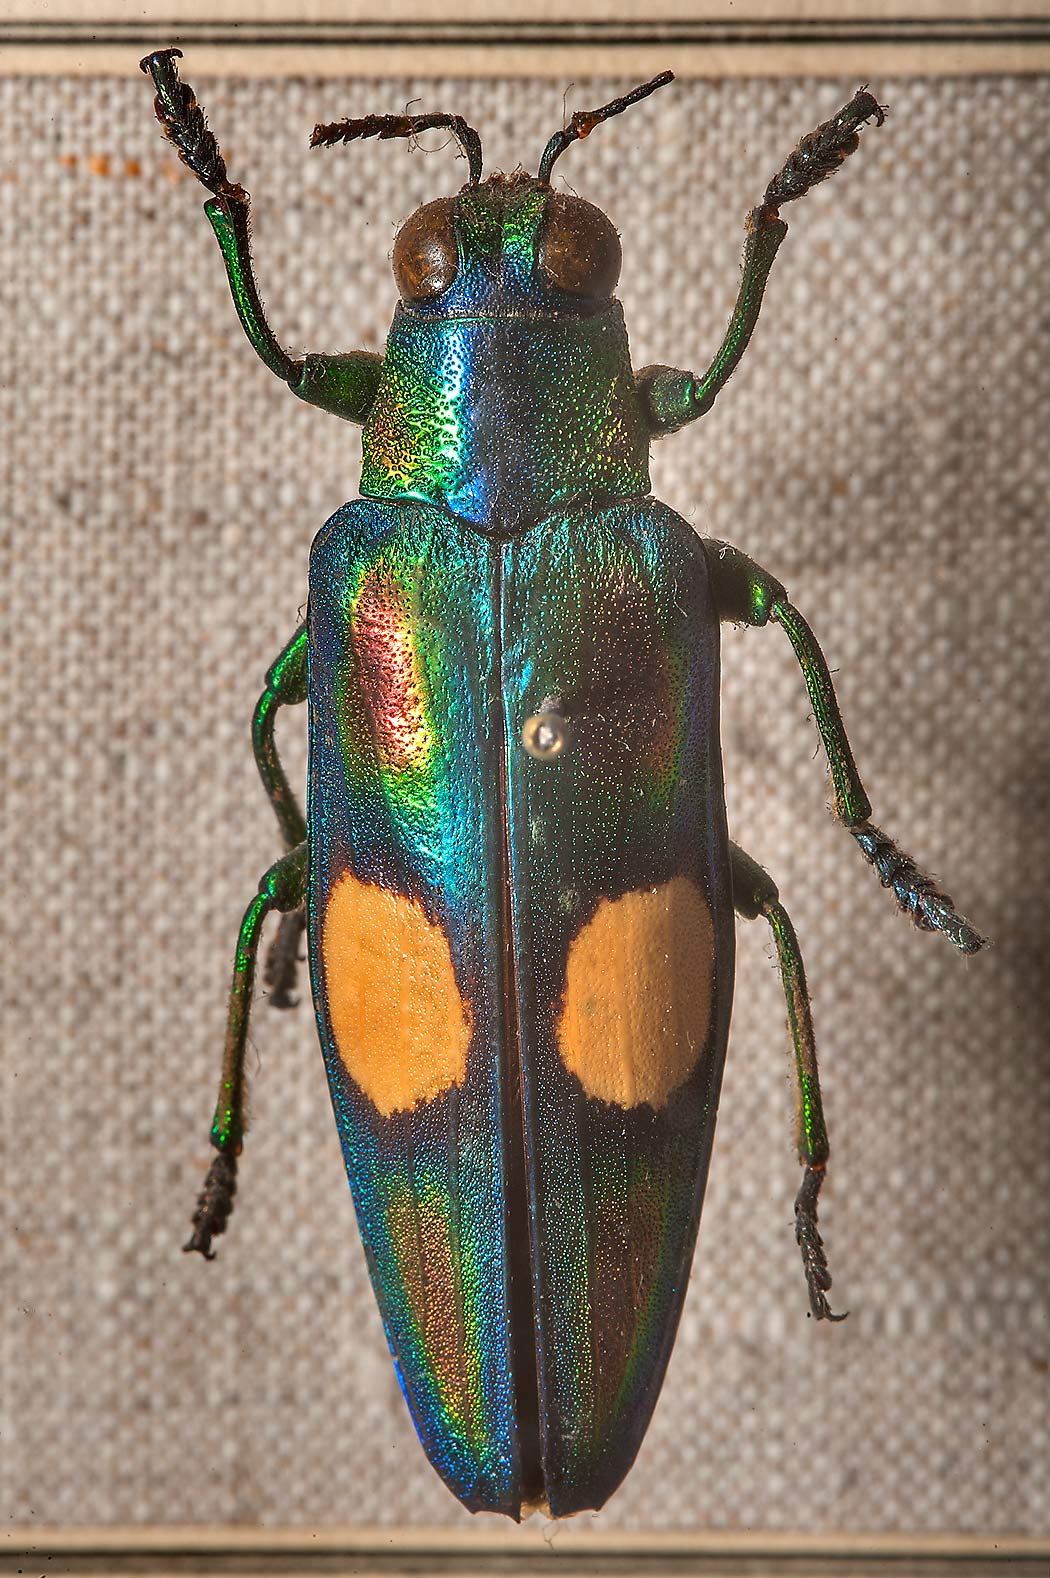 Mounted Jewel beetle Chrysochroa ocellata in Zoological Museum. St.Petersburg, Russia